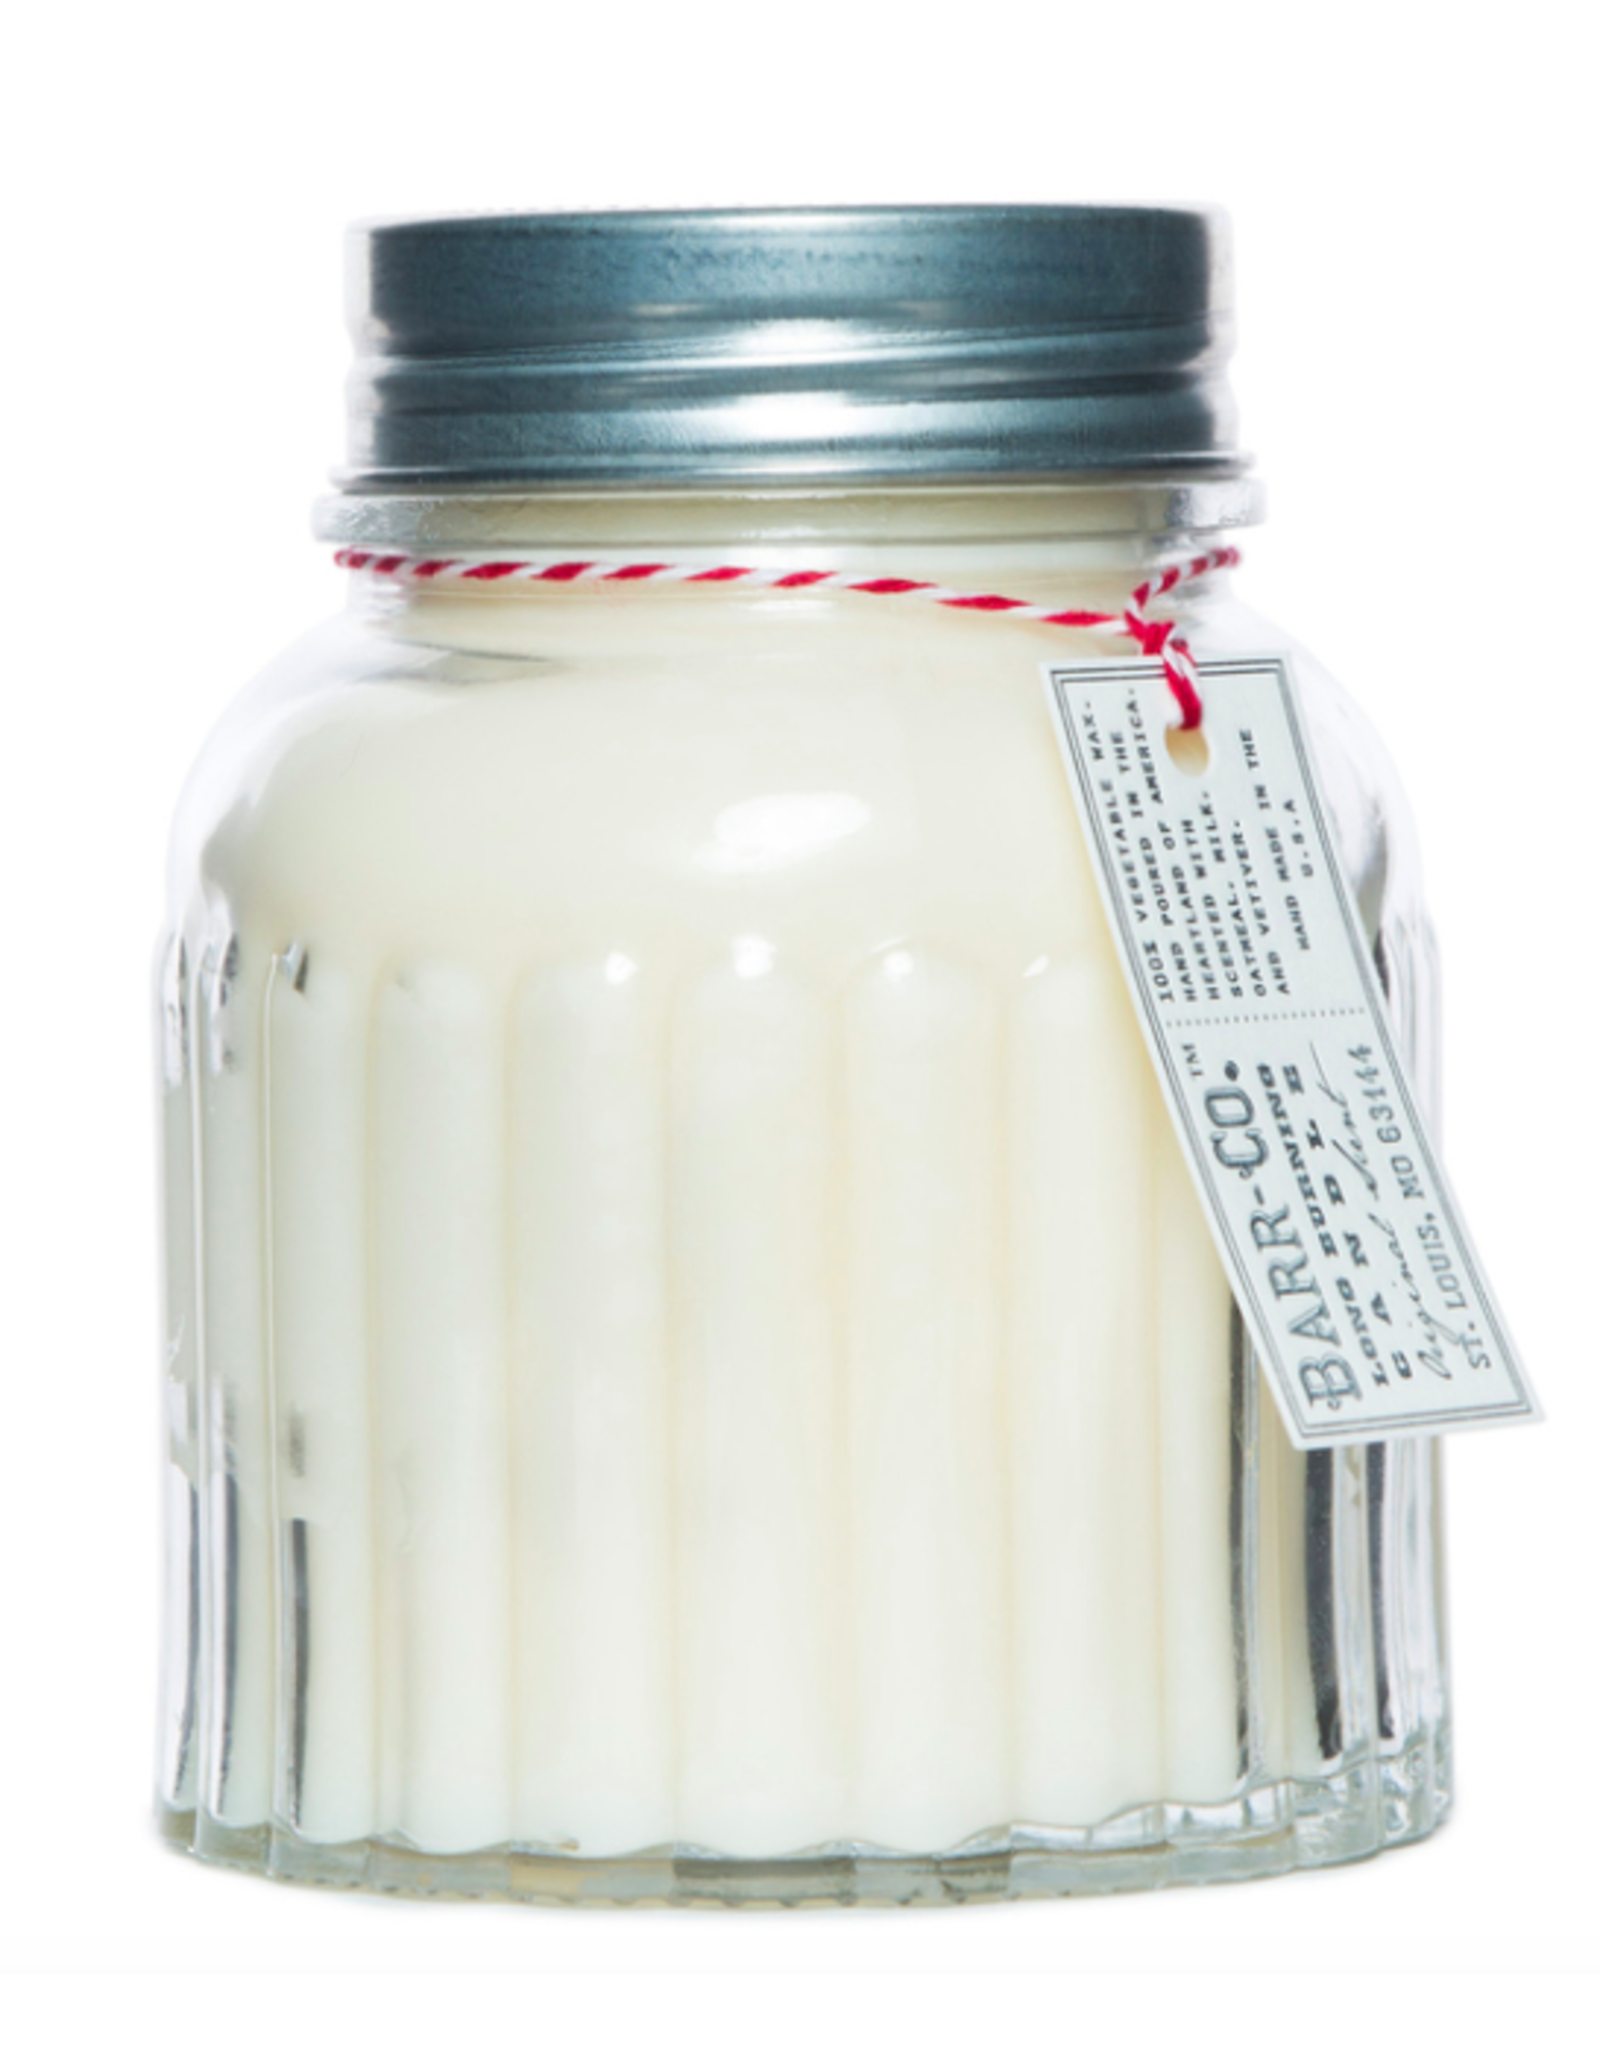 Barr-Co Original Scent Apothecary Candle